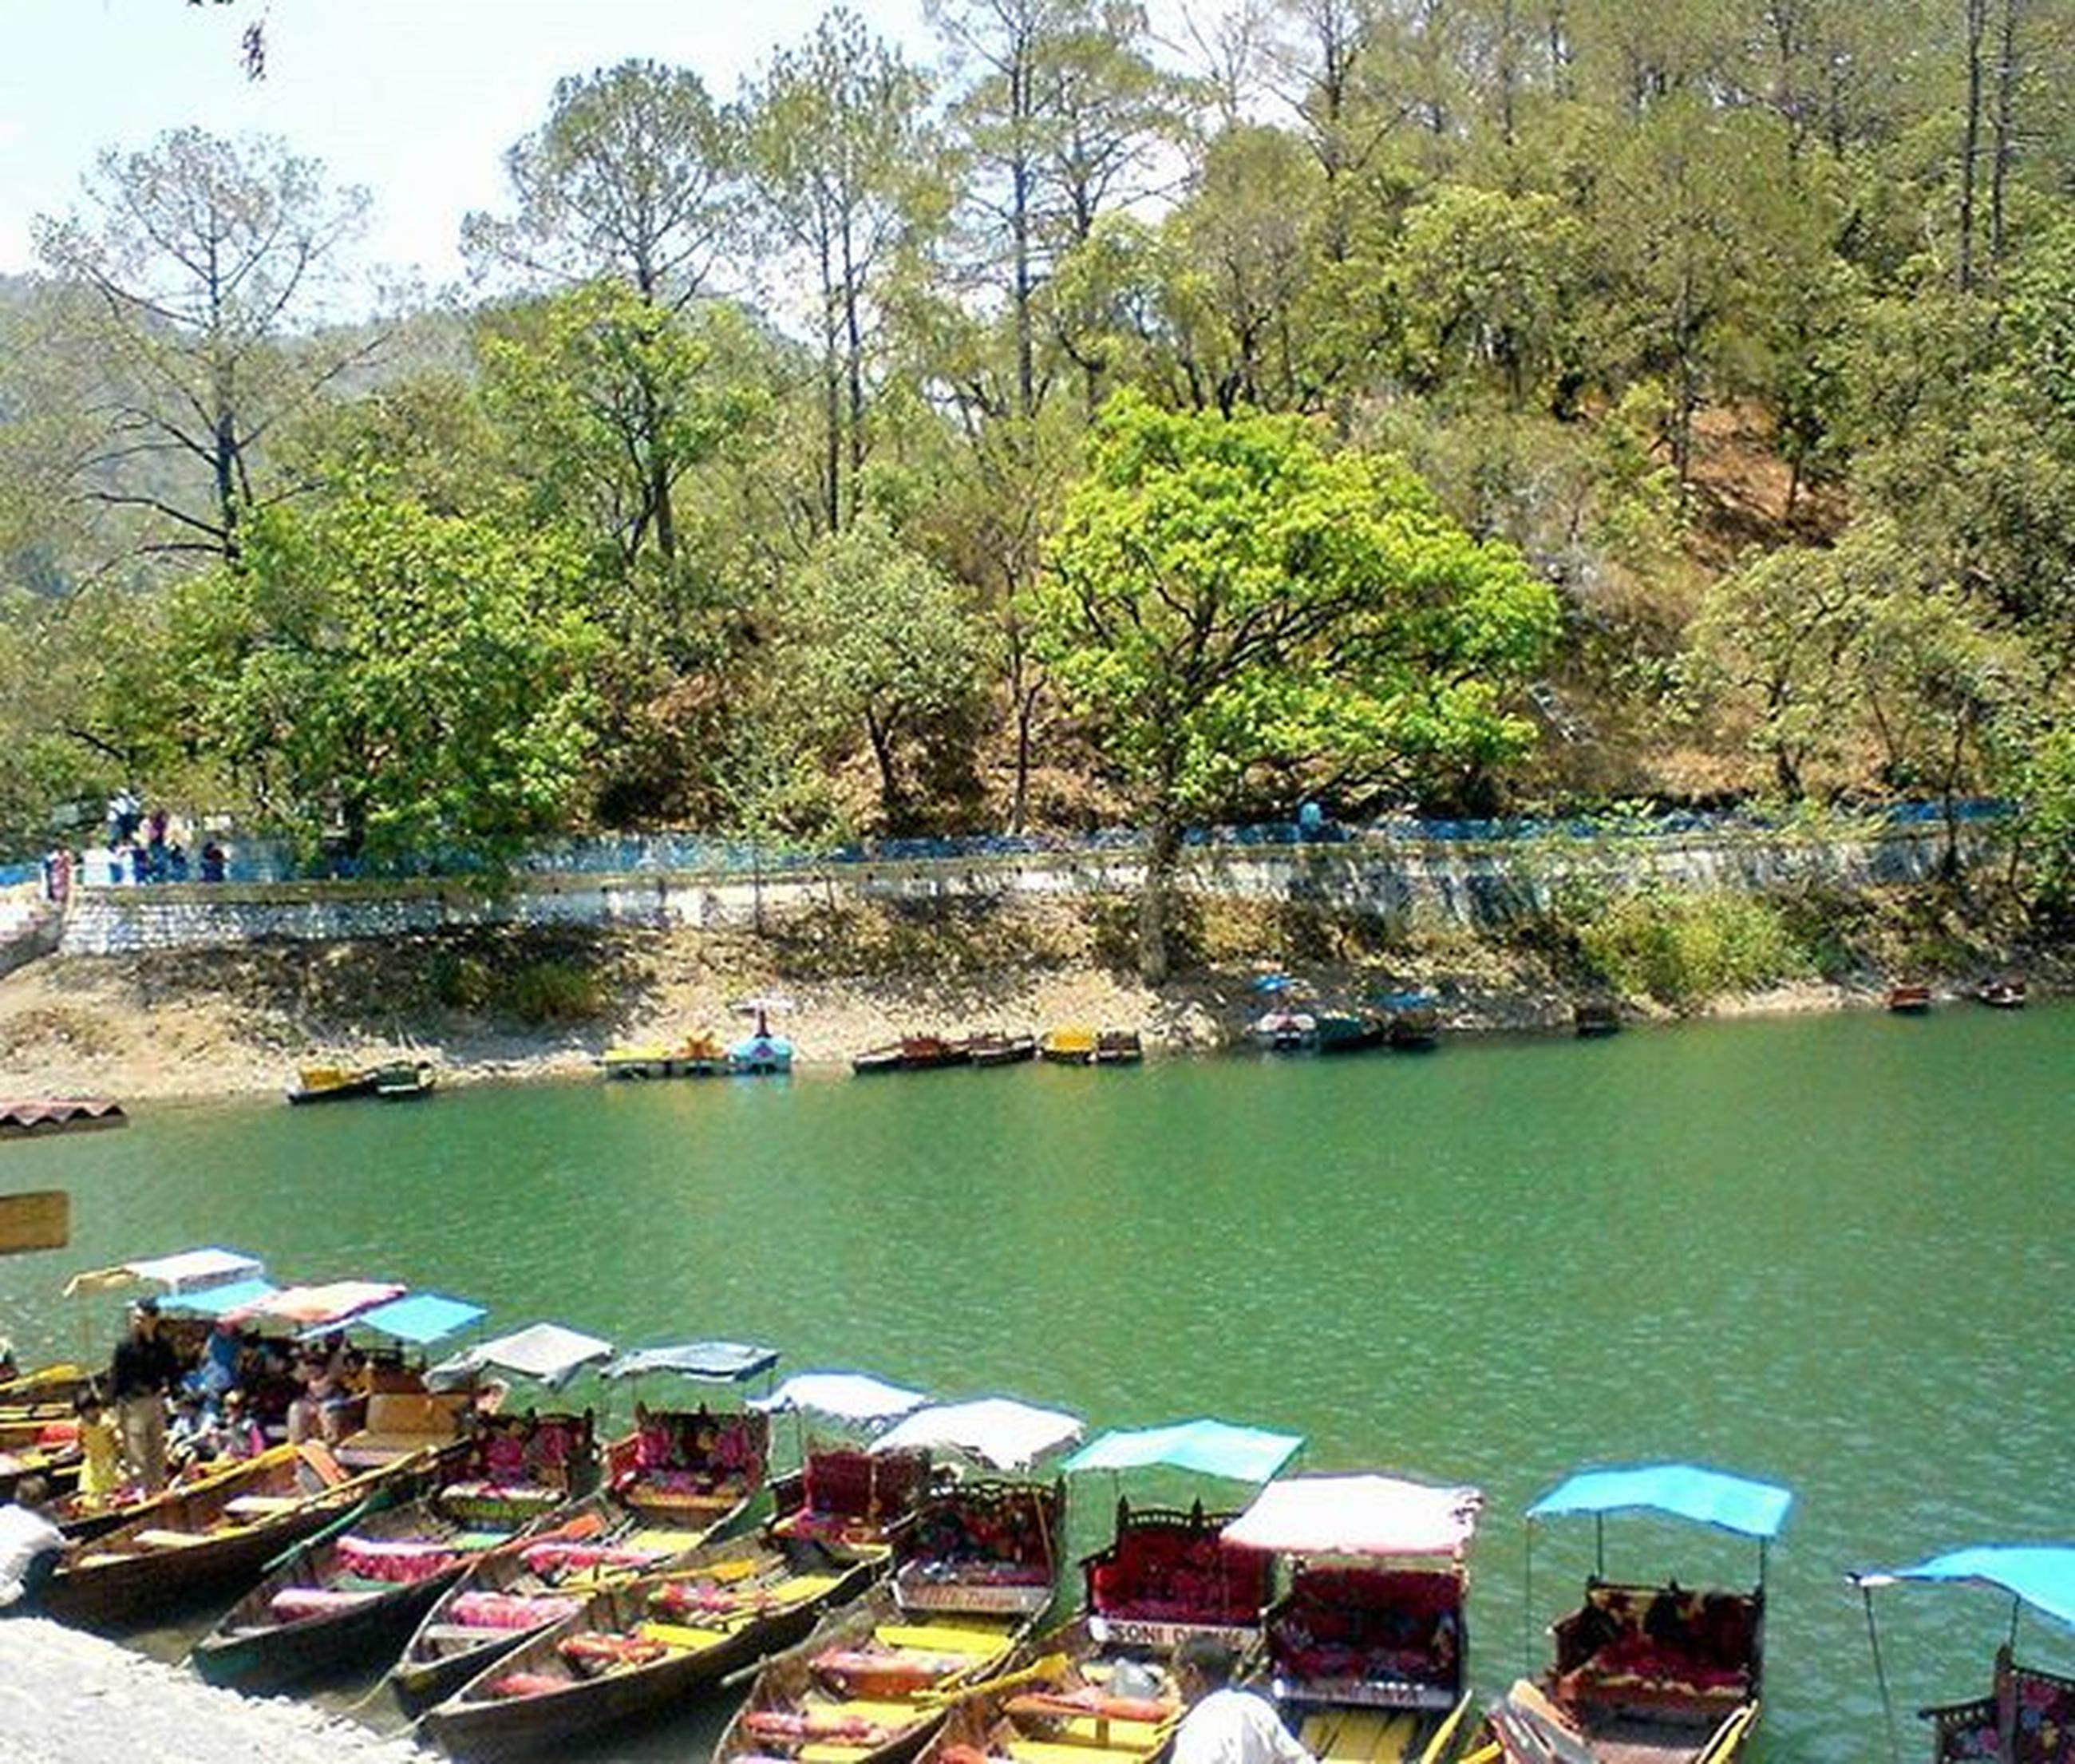 water, tree, nautical vessel, moored, boat, transportation, mode of transport, lake, tranquility, nature, day, tranquil scene, scenics, beauty in nature, outdoors, river, sky, incidental people, green color, high angle view